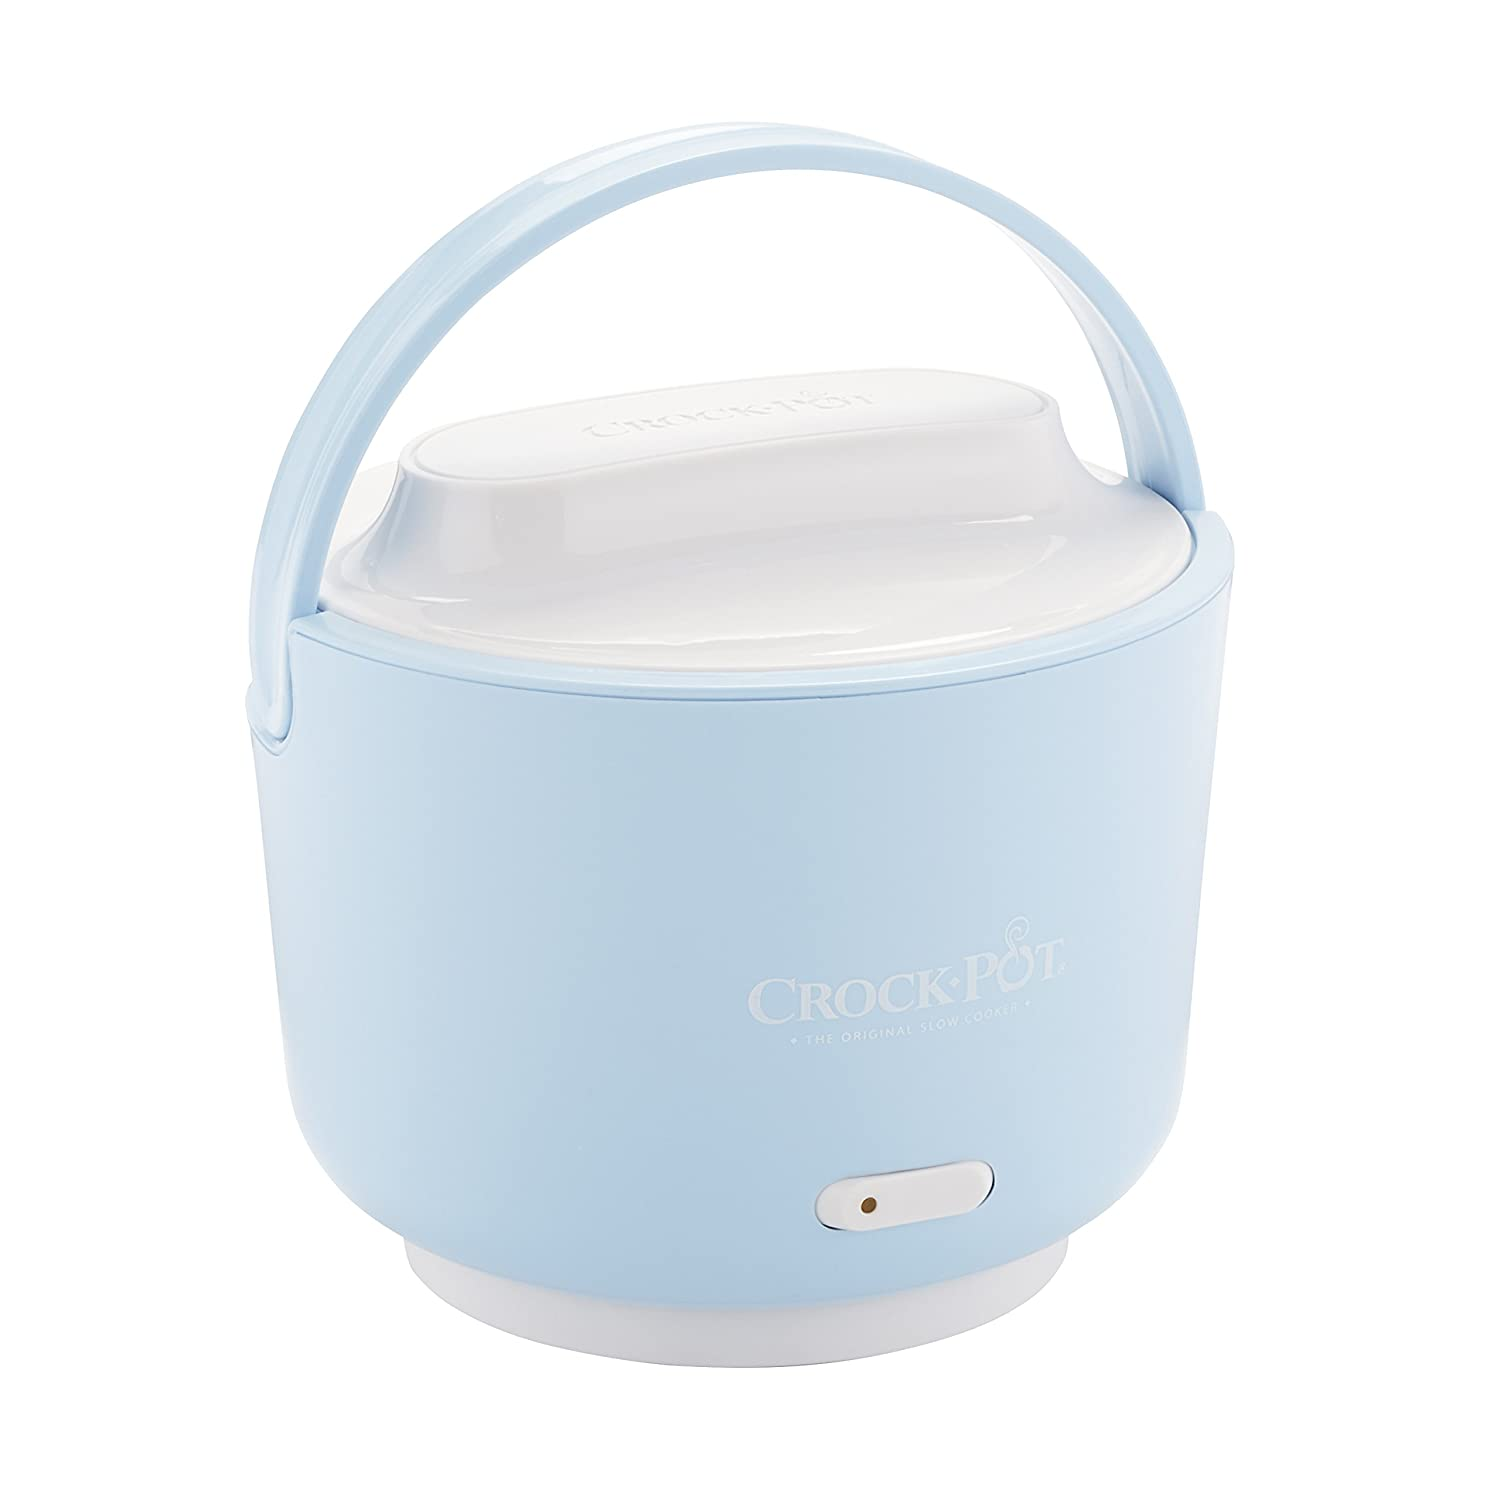 Crock-Pot 24-Ounce Lunch Crock Food Warmer, Deluxe Edition, Blue